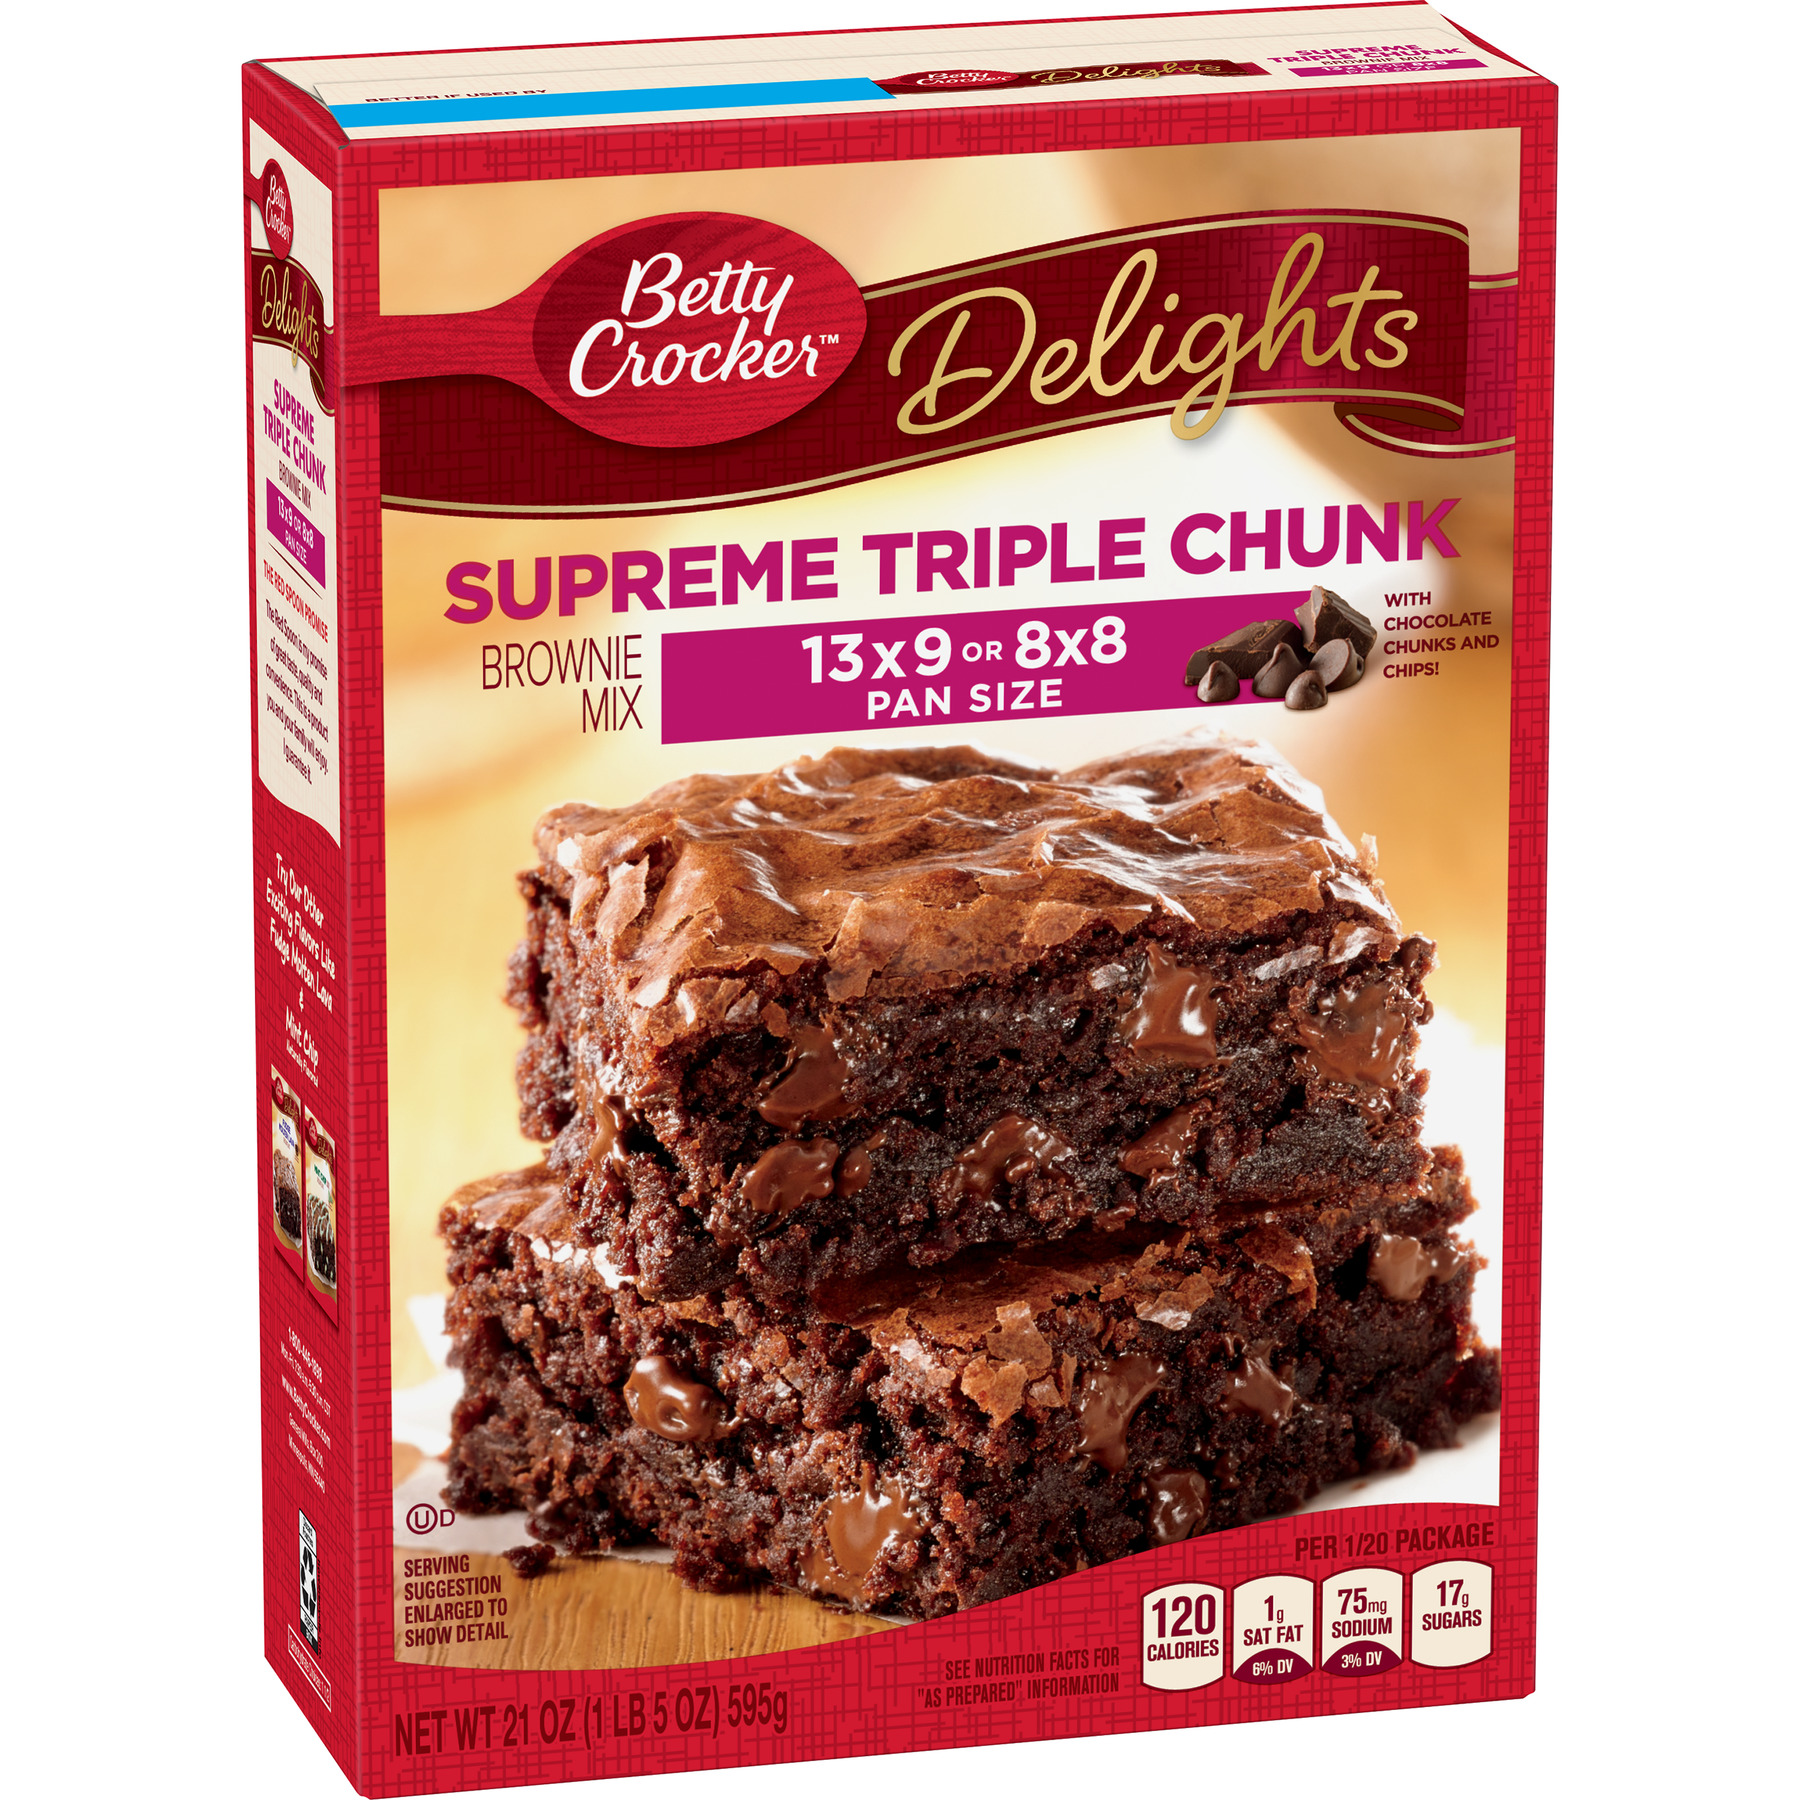 Betty Crocker Delights Triple Chunk Supreme Brownie Mix, 21 oz